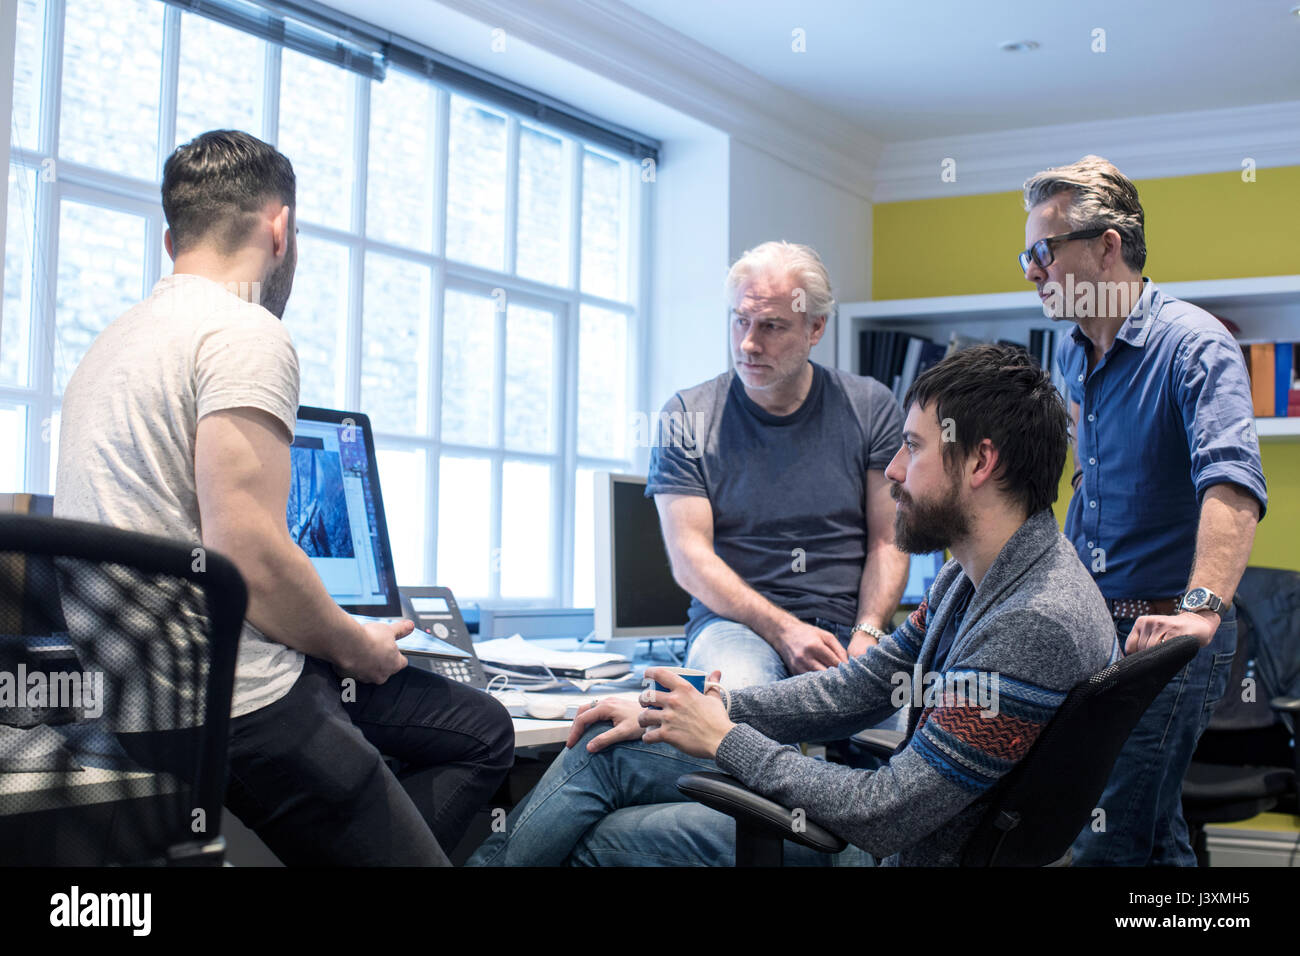 Colleagues in office using computer Stock Photo